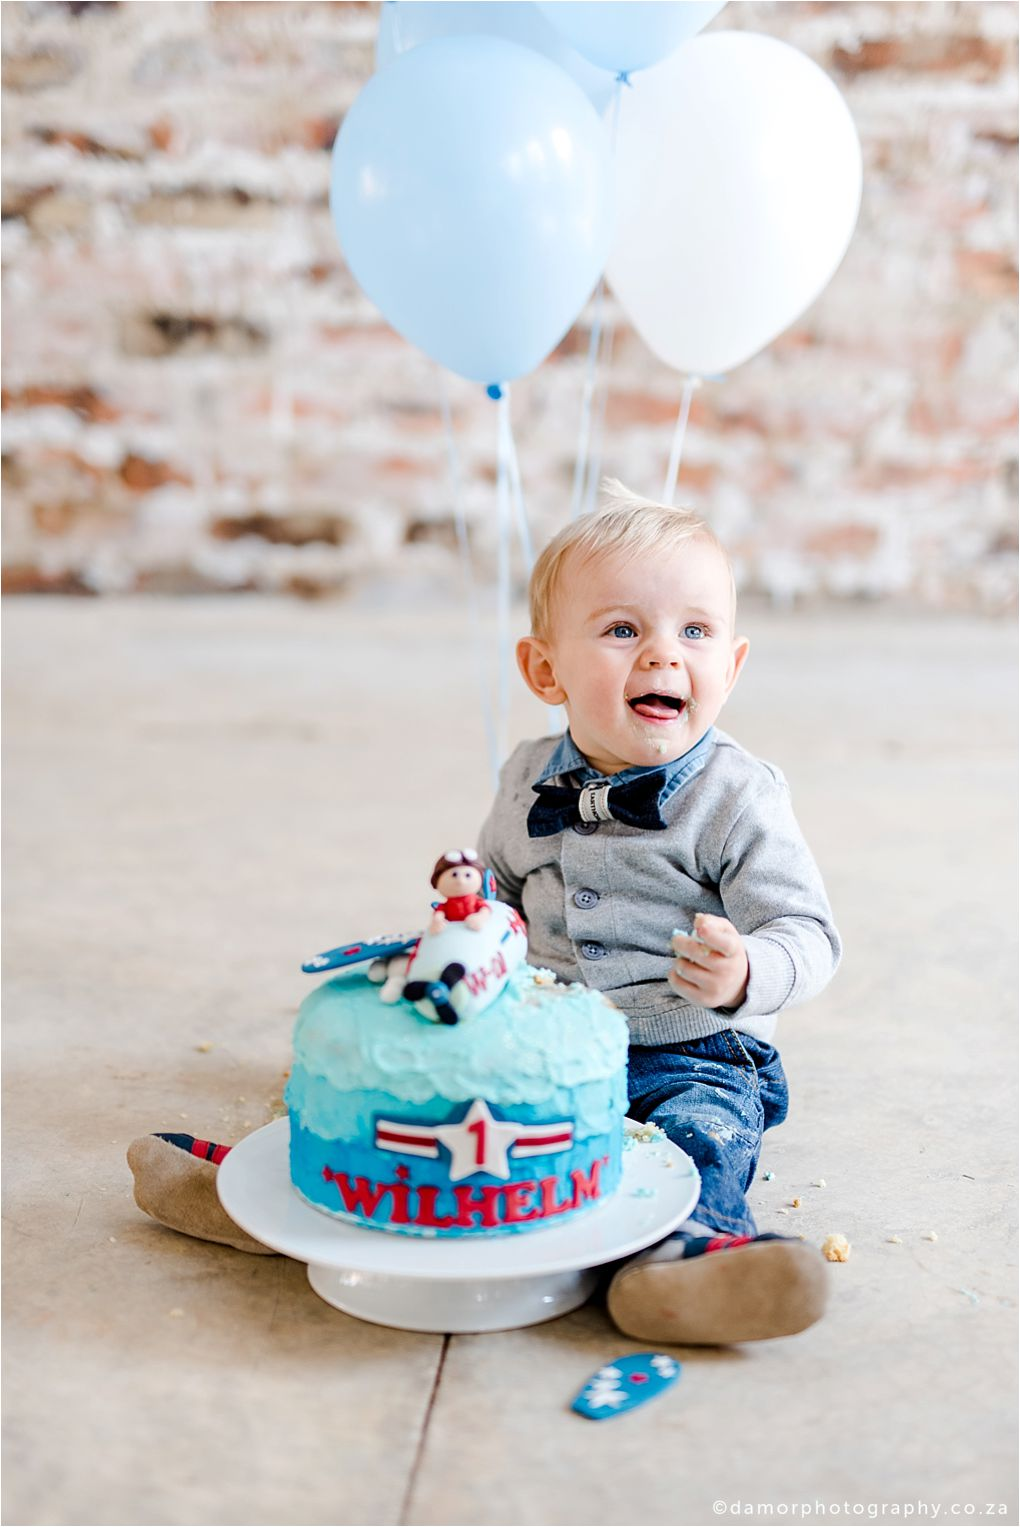 D'amor Photography Cake Smash Shoot One Year Old Birthday  01